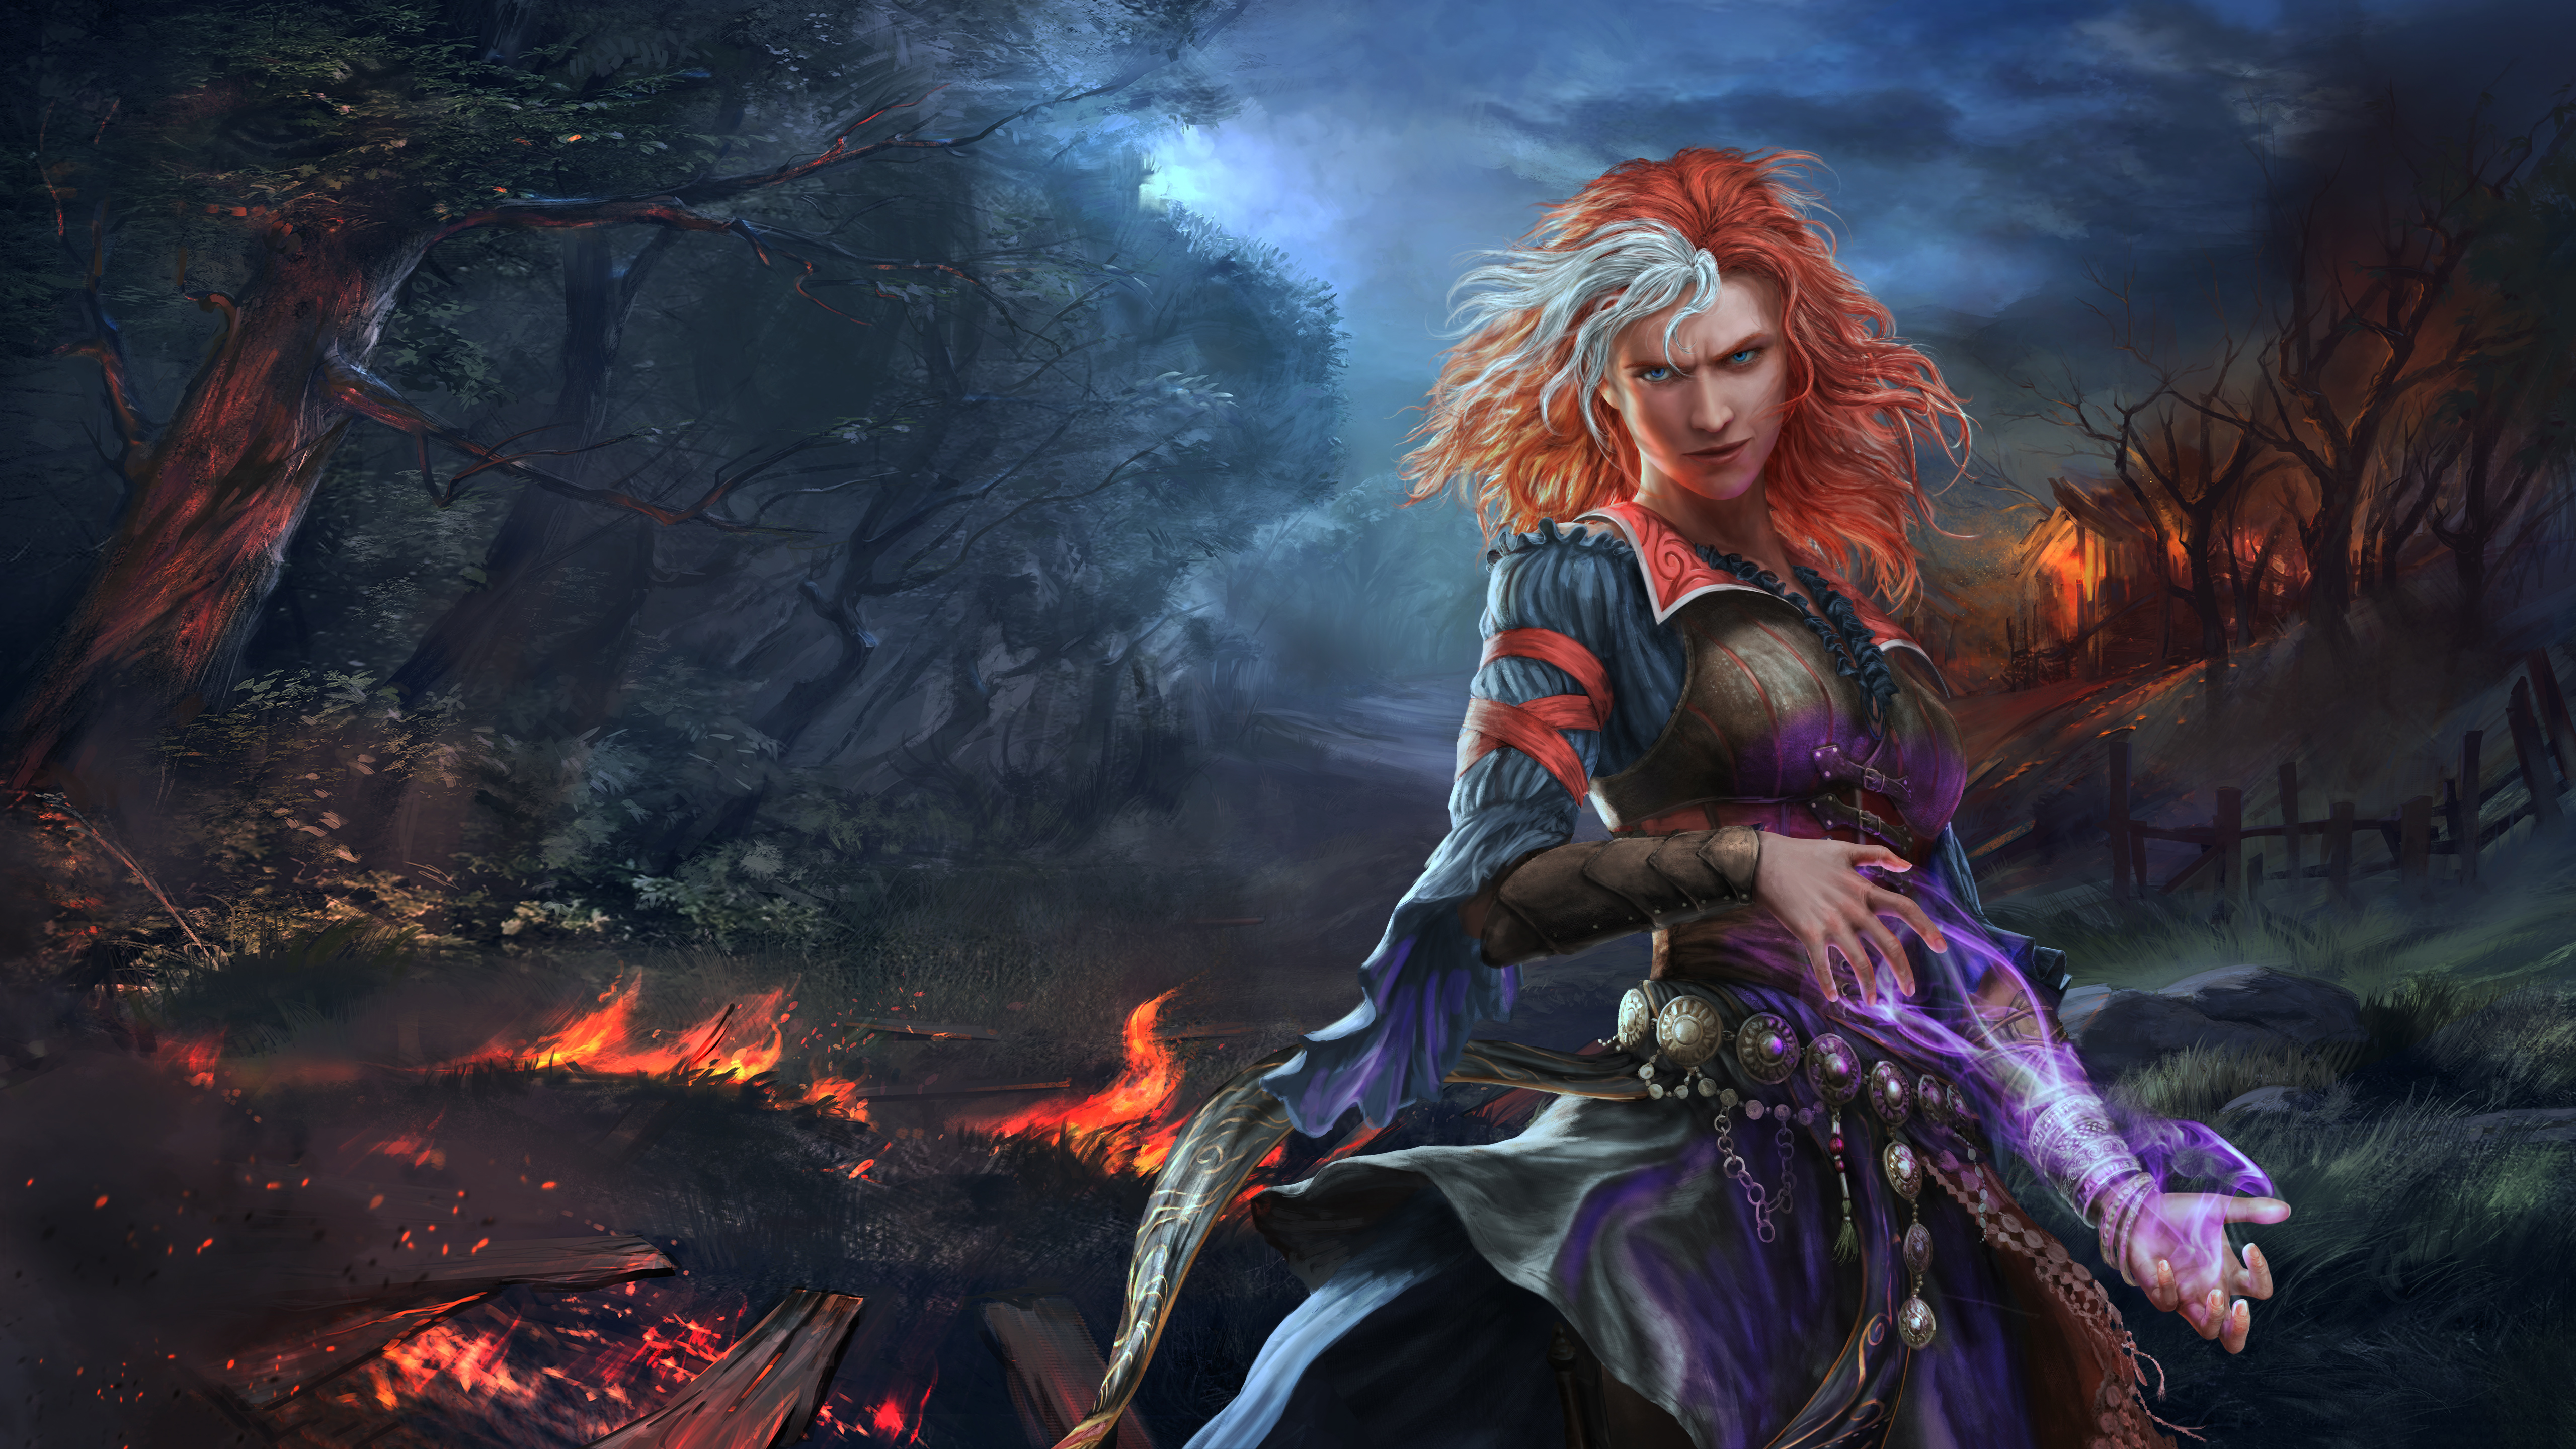 2560x1440 Divinity Original Sin 2 1440p Resolution Hd 4k Wallpapers Images Backgrounds Photos And Pictures